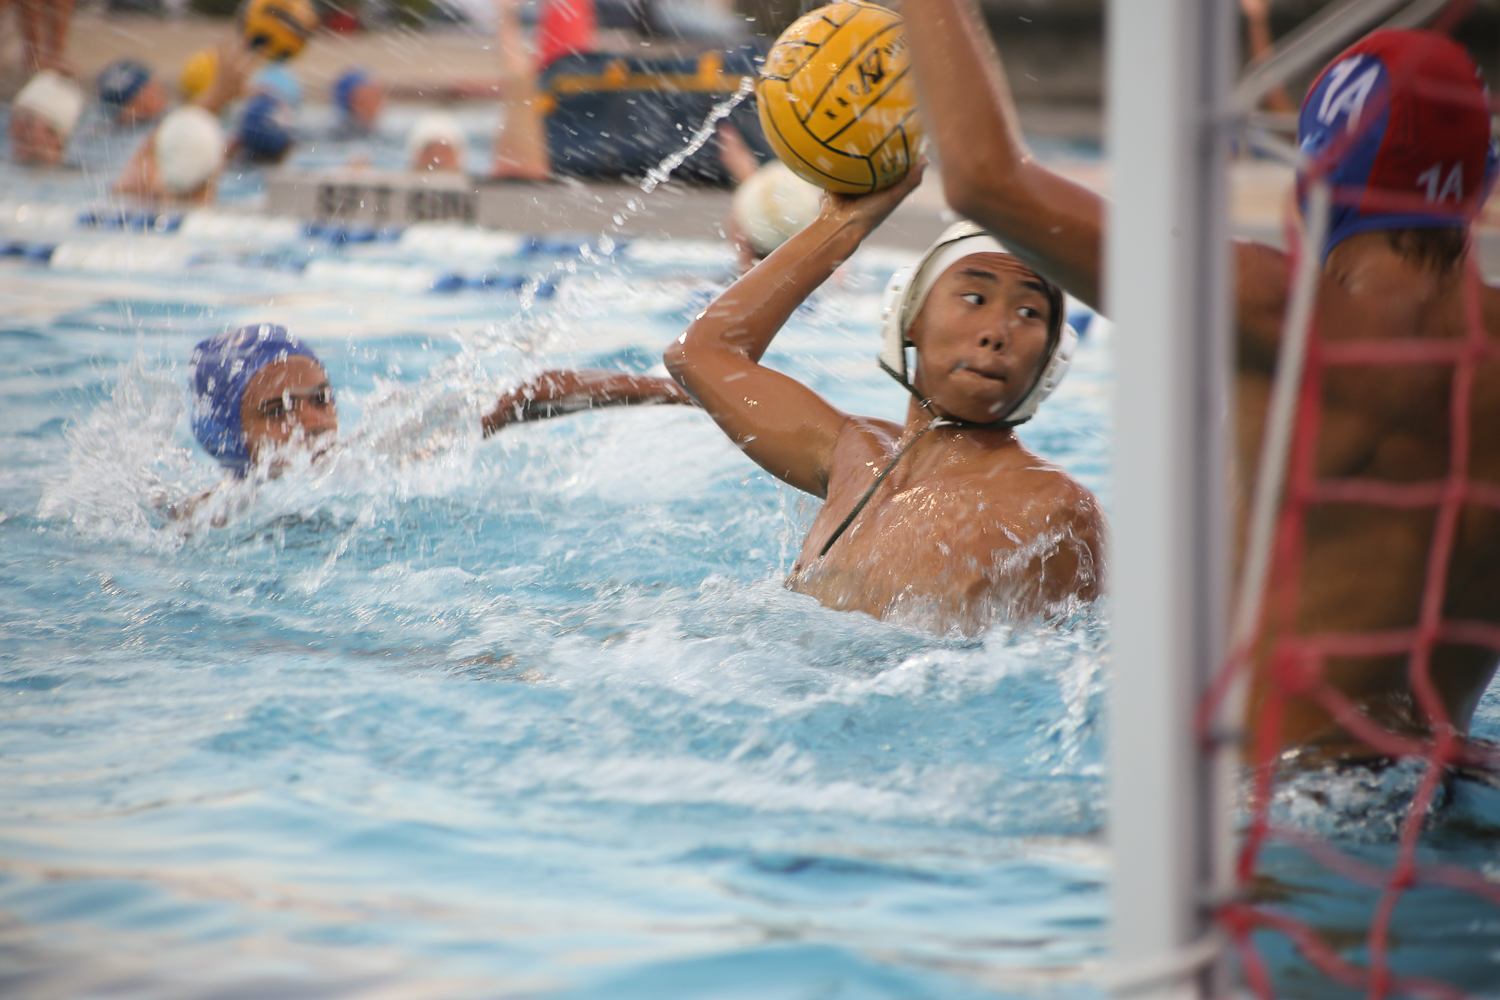 waterpolo_jacquelinecuervo-15.jpg